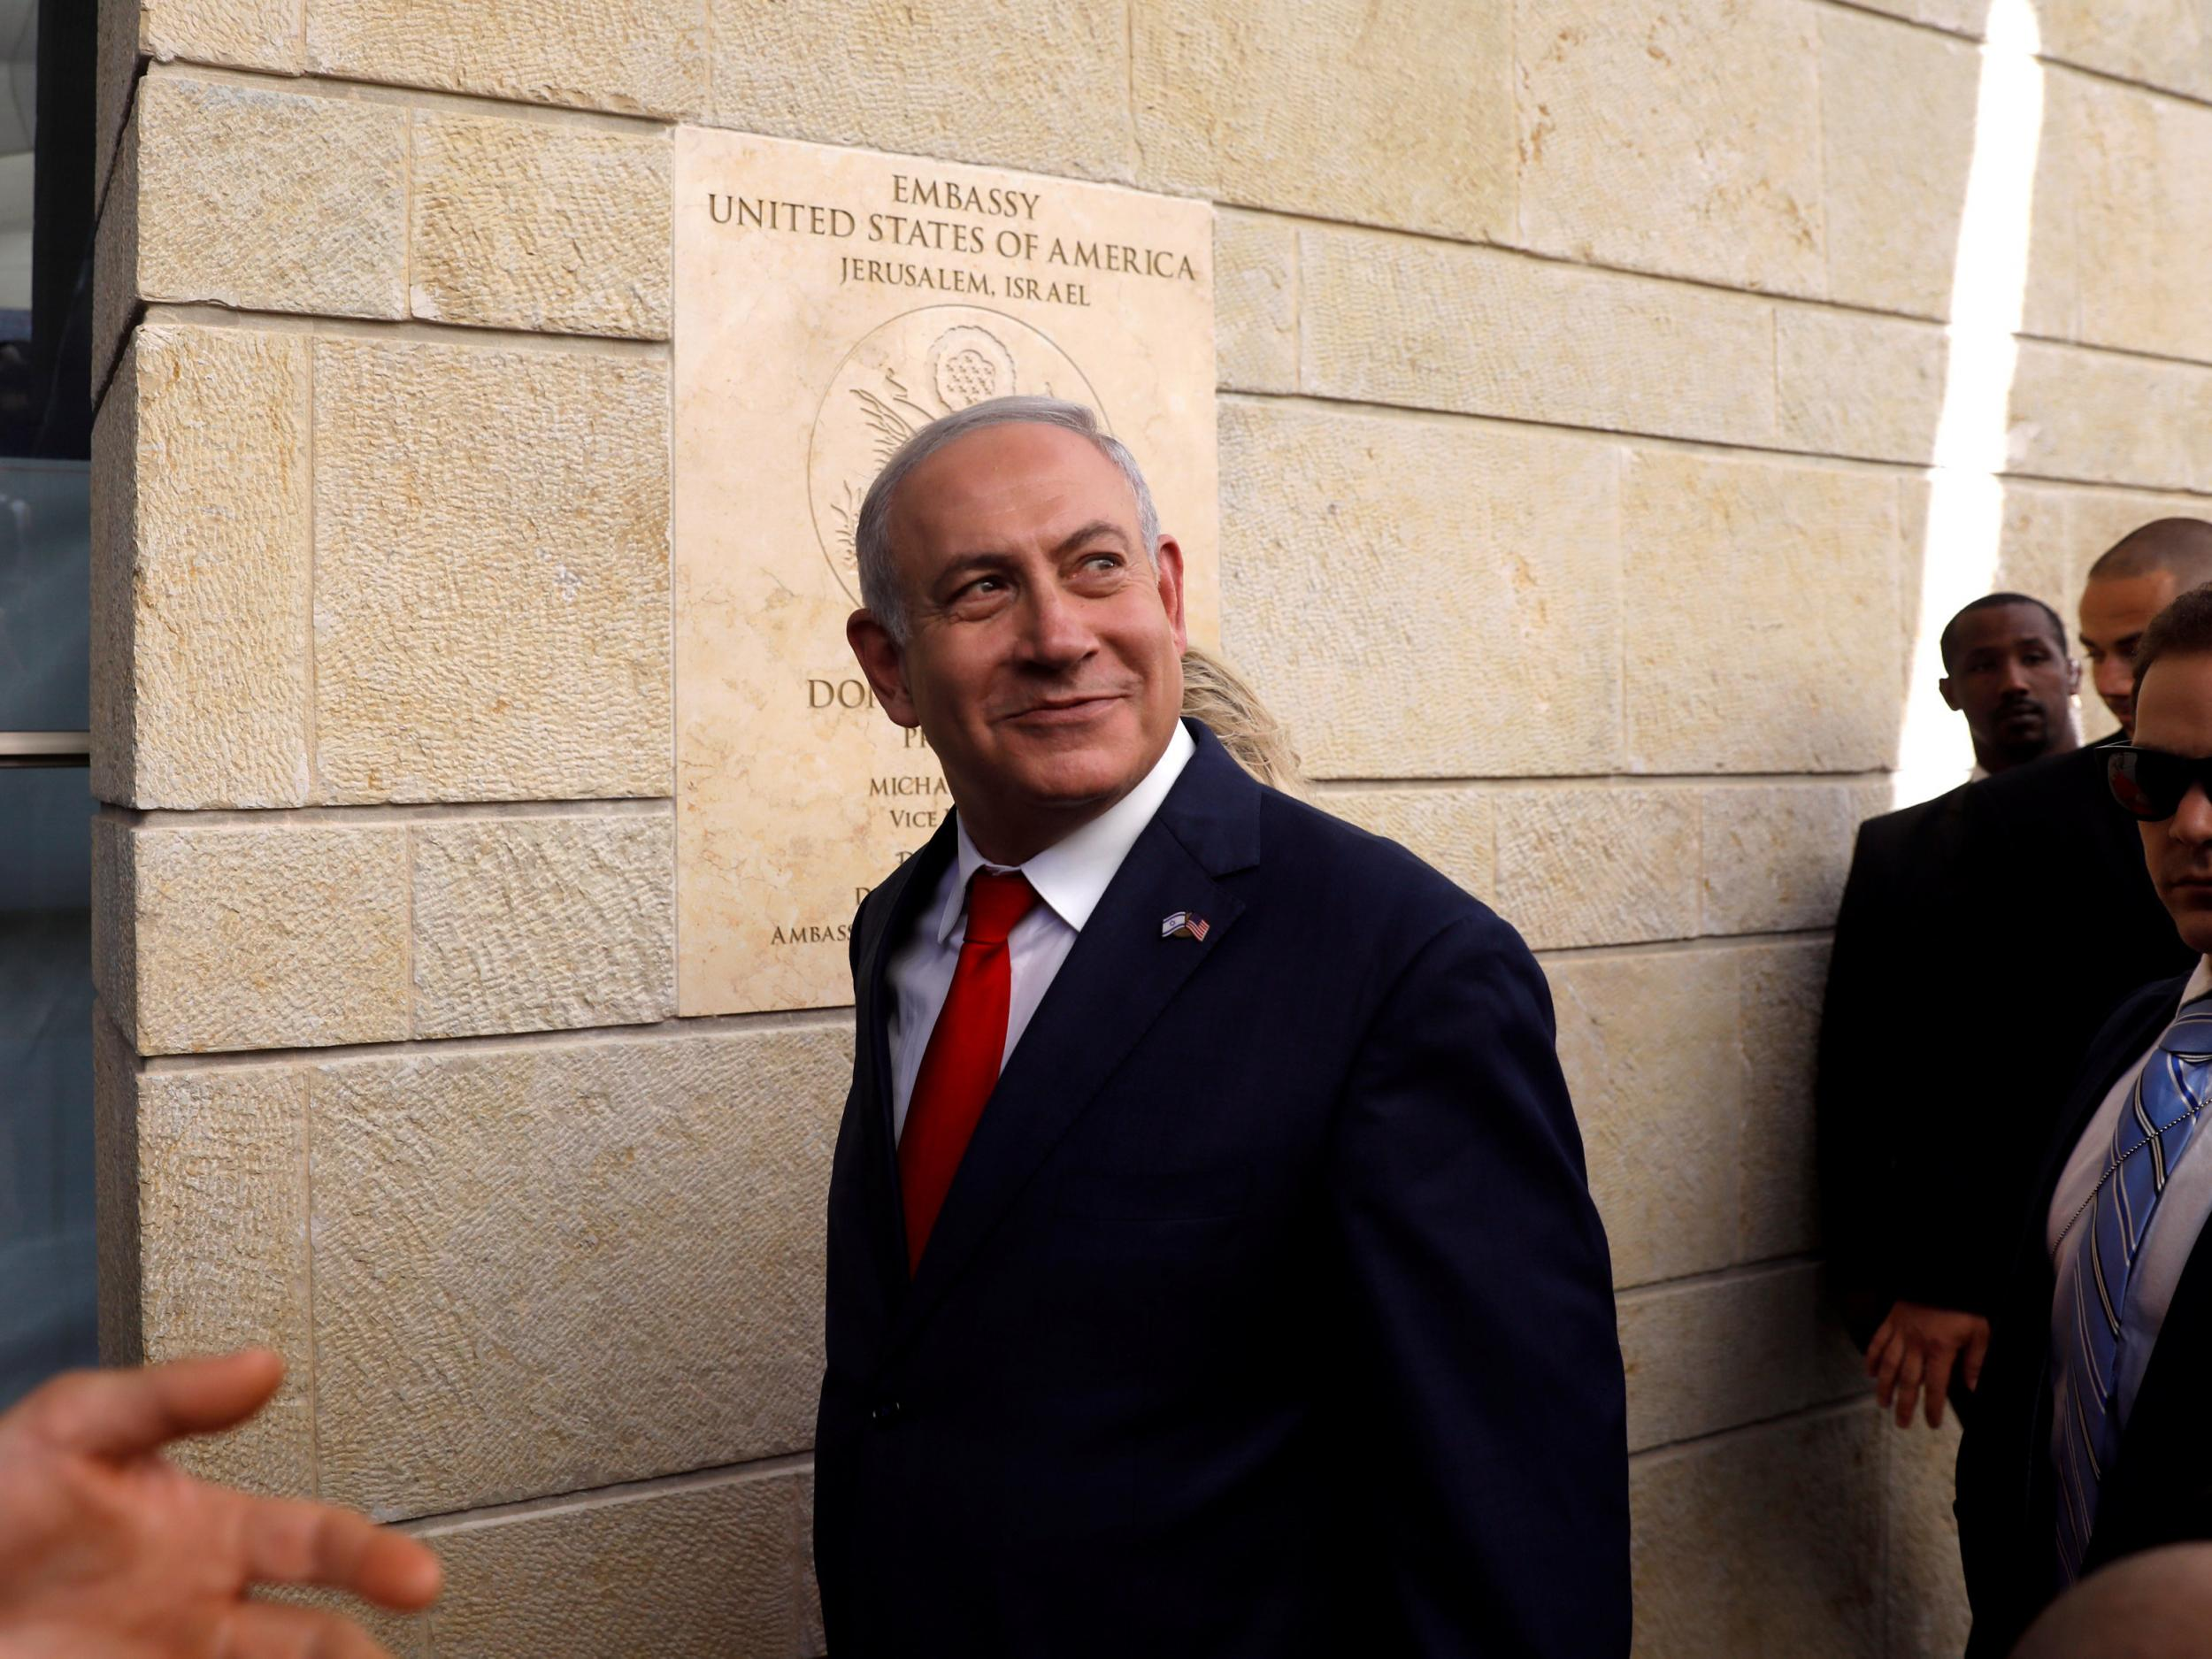 Israel is at the height of its power after the embassy opening in Jerusalem – but uncritical support from the US will do it more damage than good